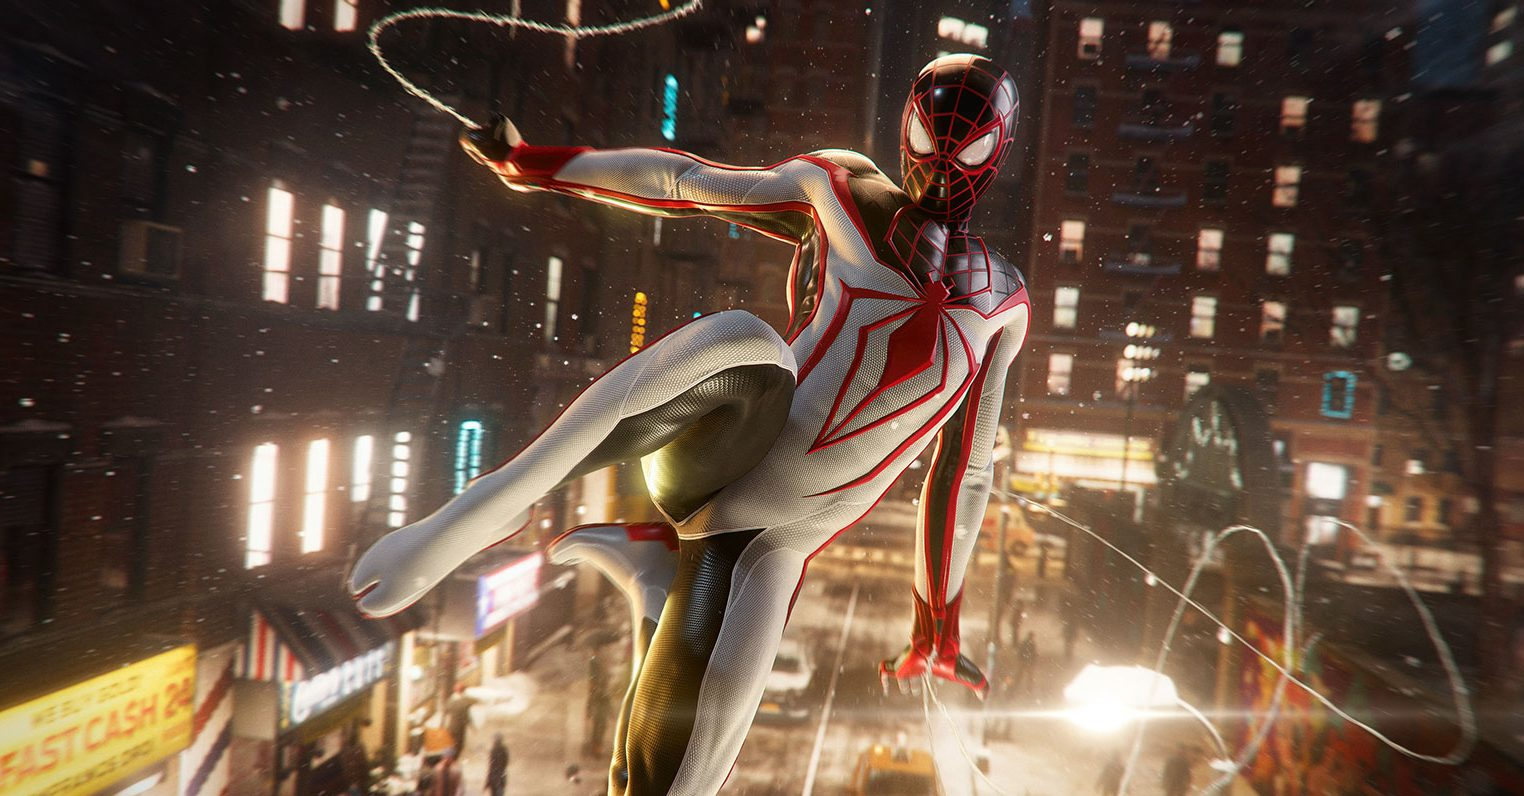 msm_milesmorales_ps5_track_suit_legal (1)